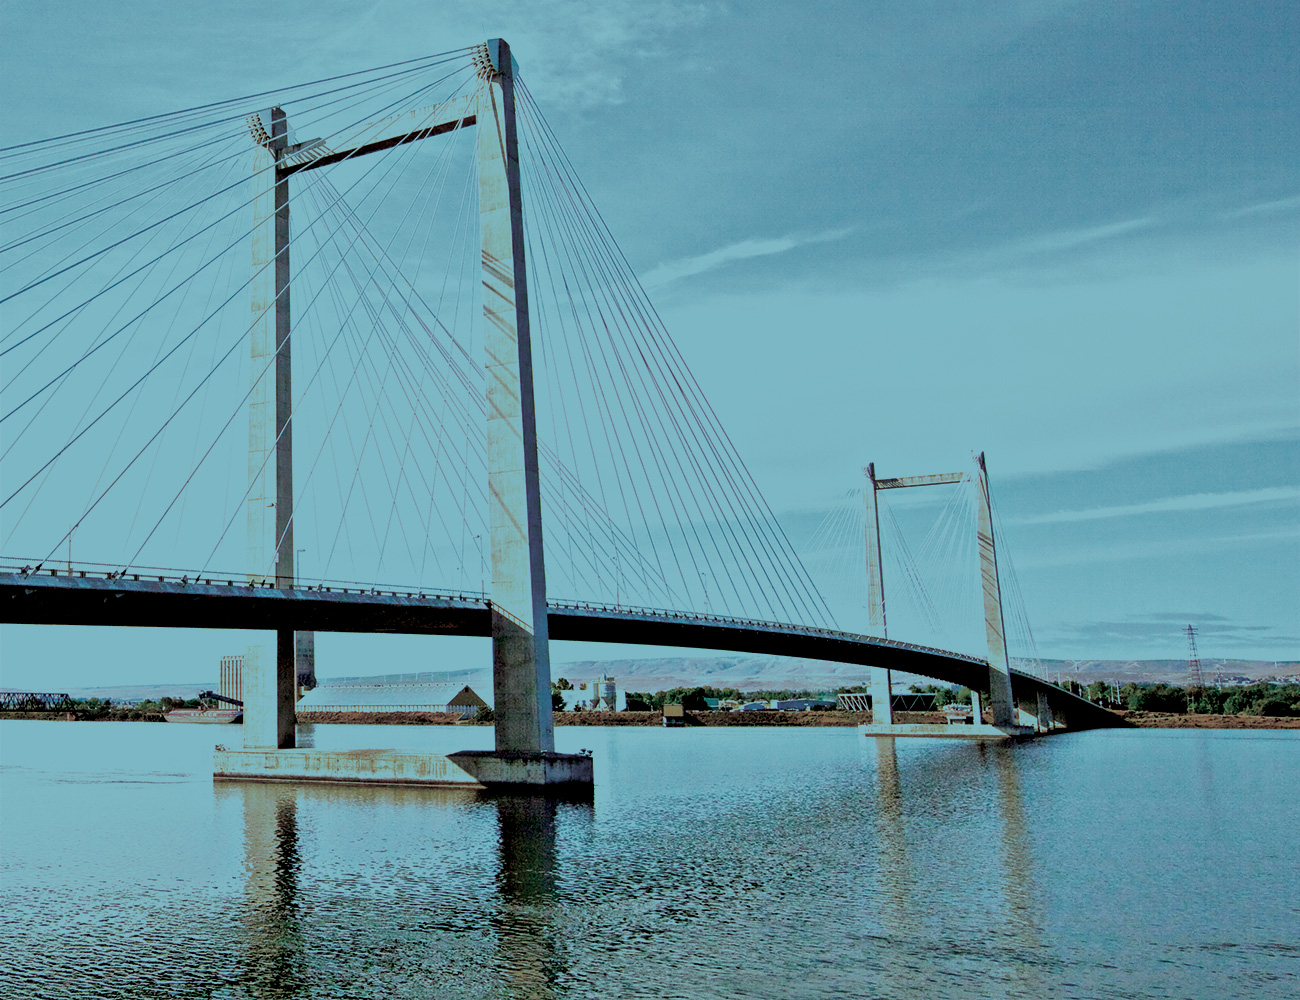 Cable bridge from Pasco side